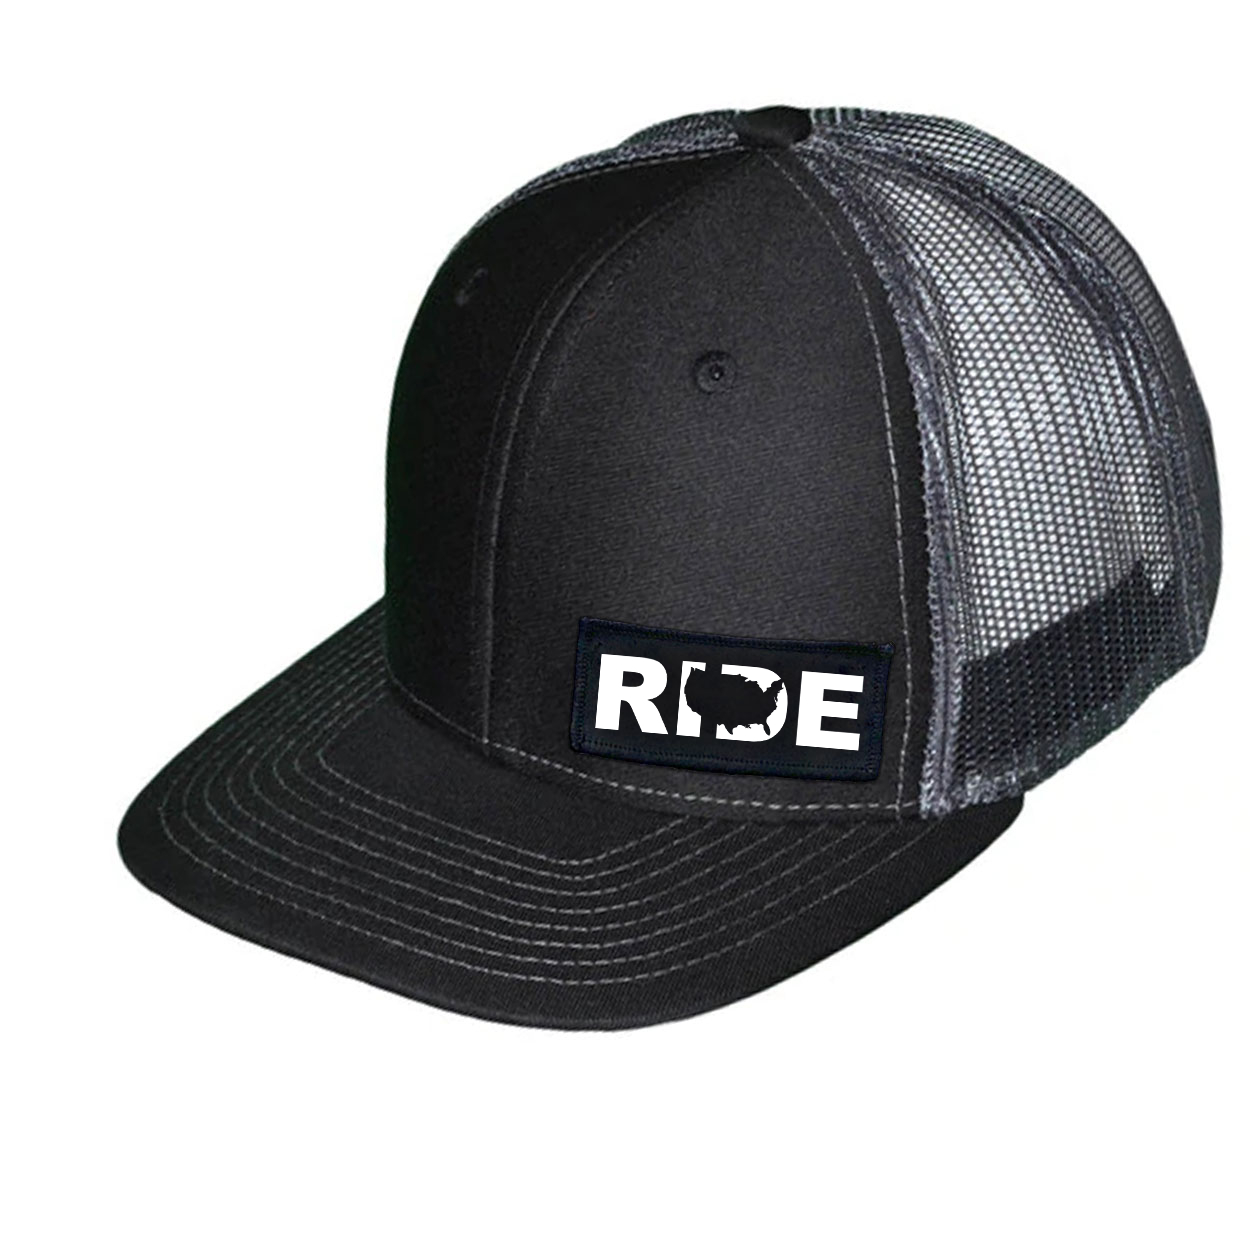 Ride United States Night Out Woven Patch Snapback Trucker Hat Black/Dark Gray (White Logo)